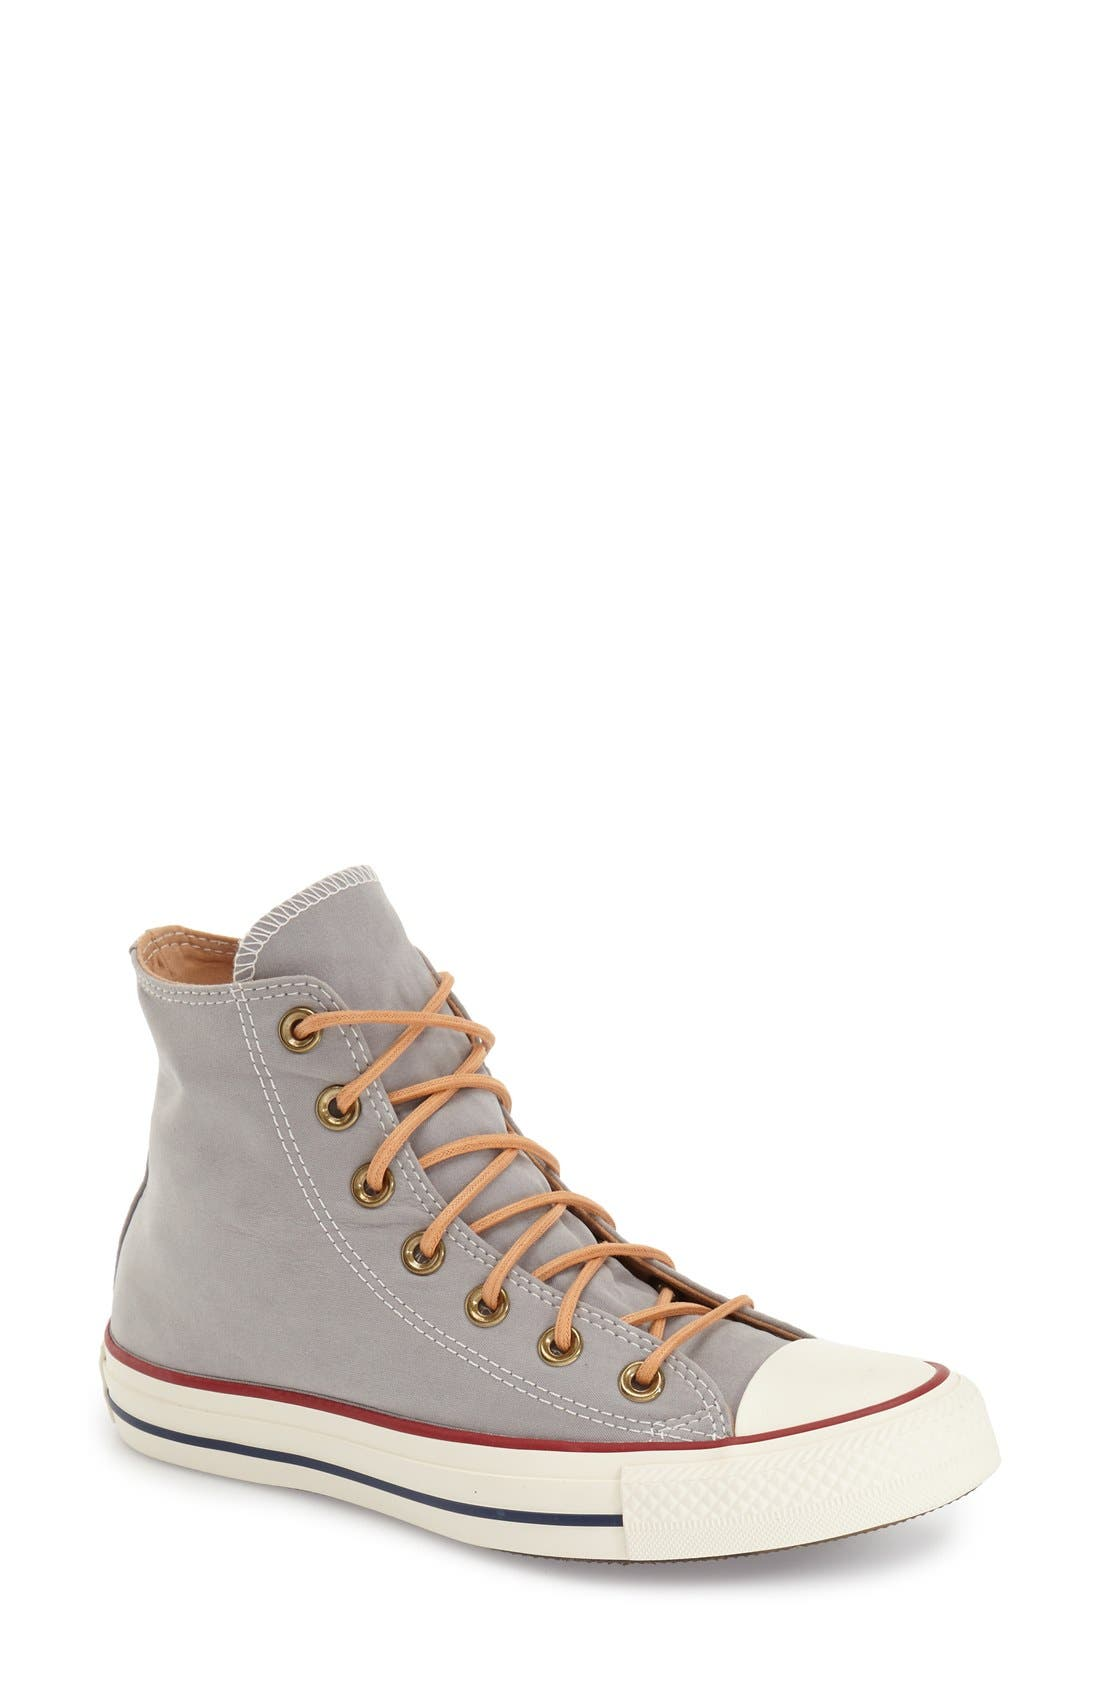 Main Image - Converse Chuck Taylor® All Star® 'Peached' High Top Sneaker (Women)